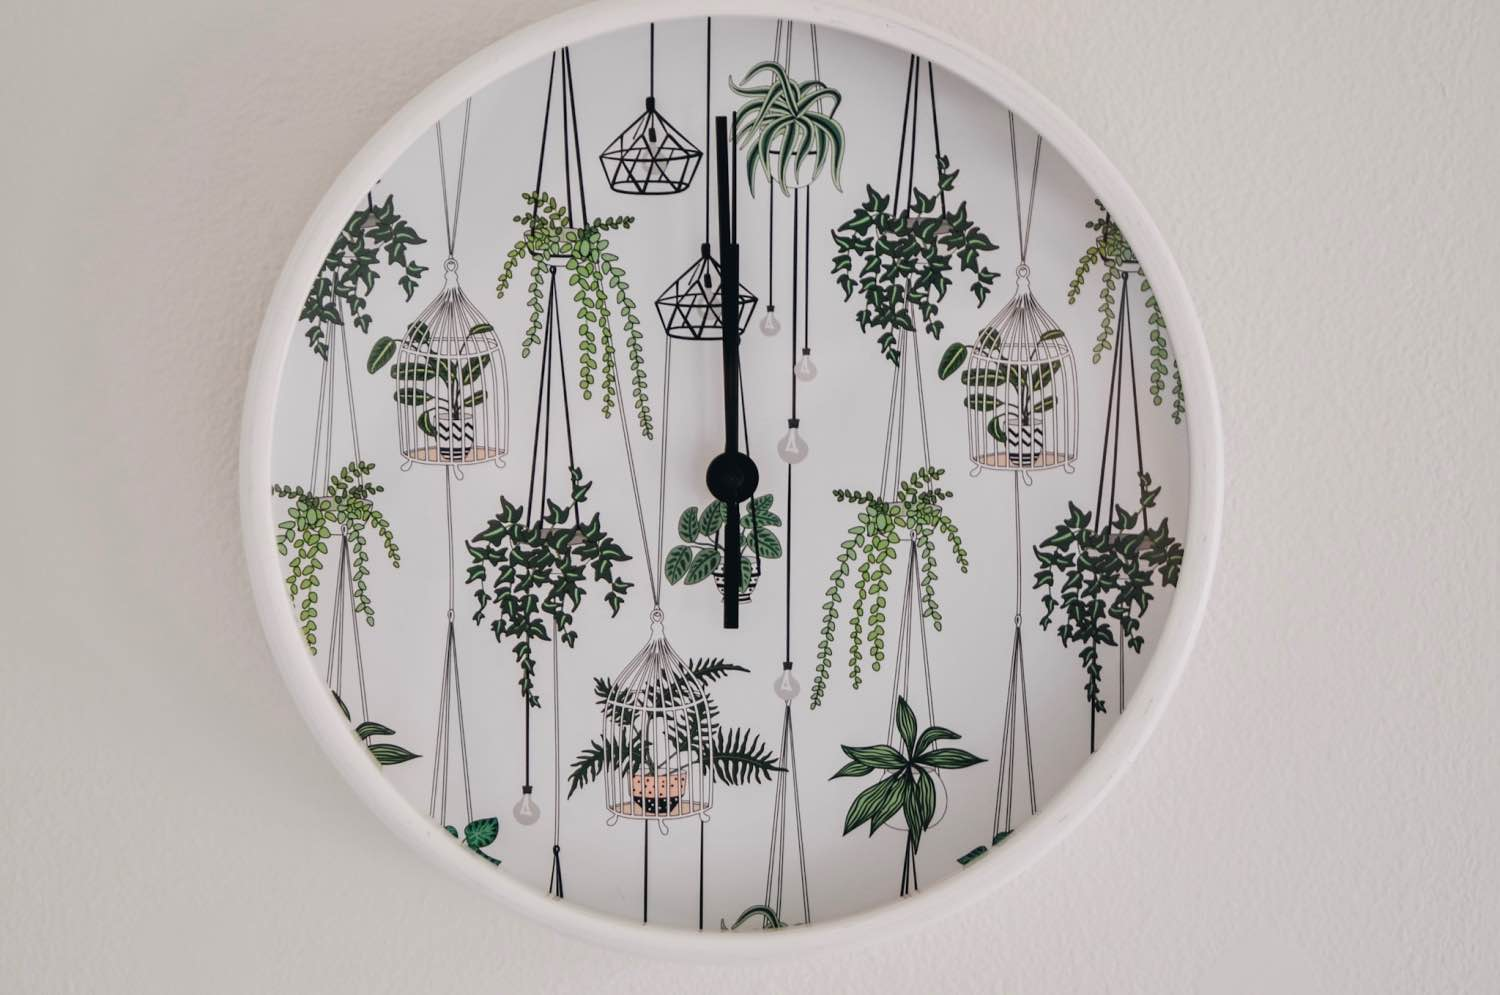 close up detail of terrarium clock from society6